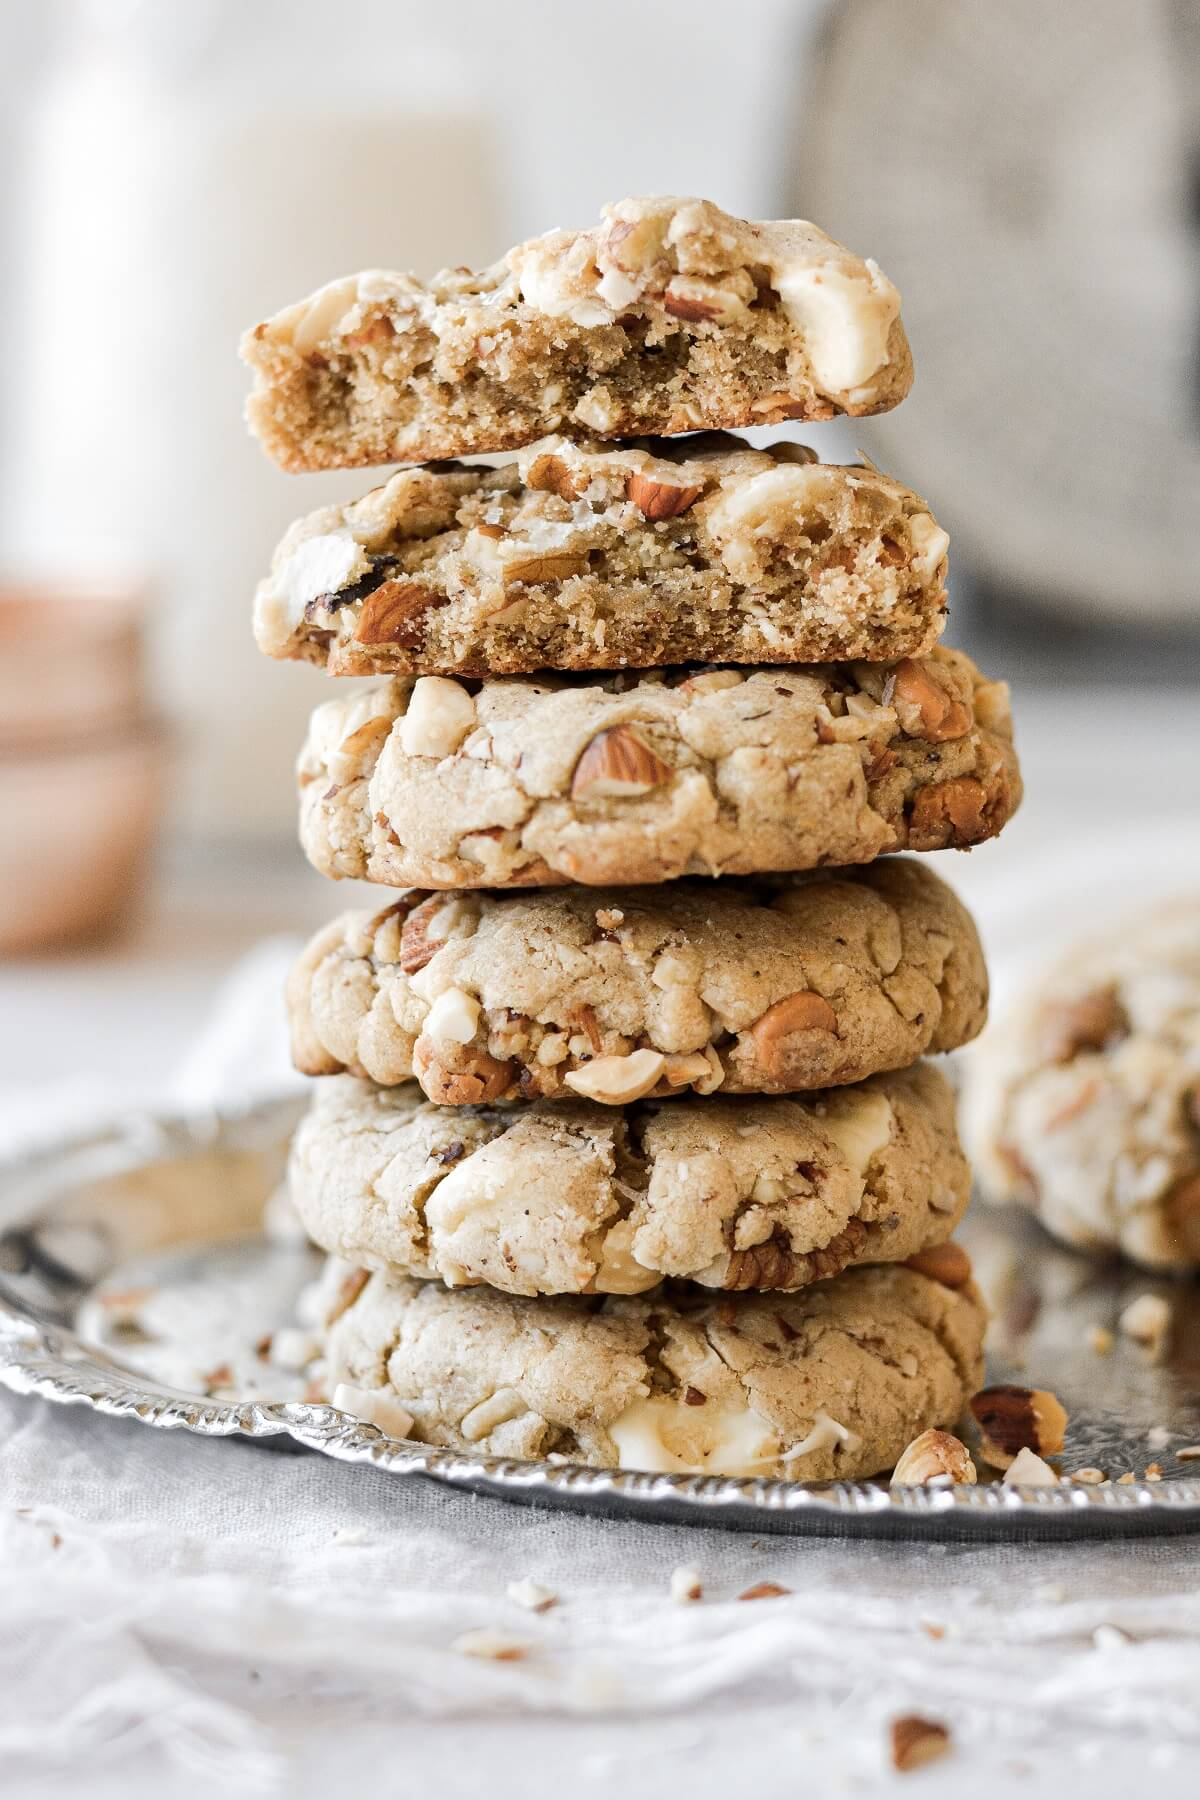 A stack of nutty chocolate chip cookies, one broken in half.